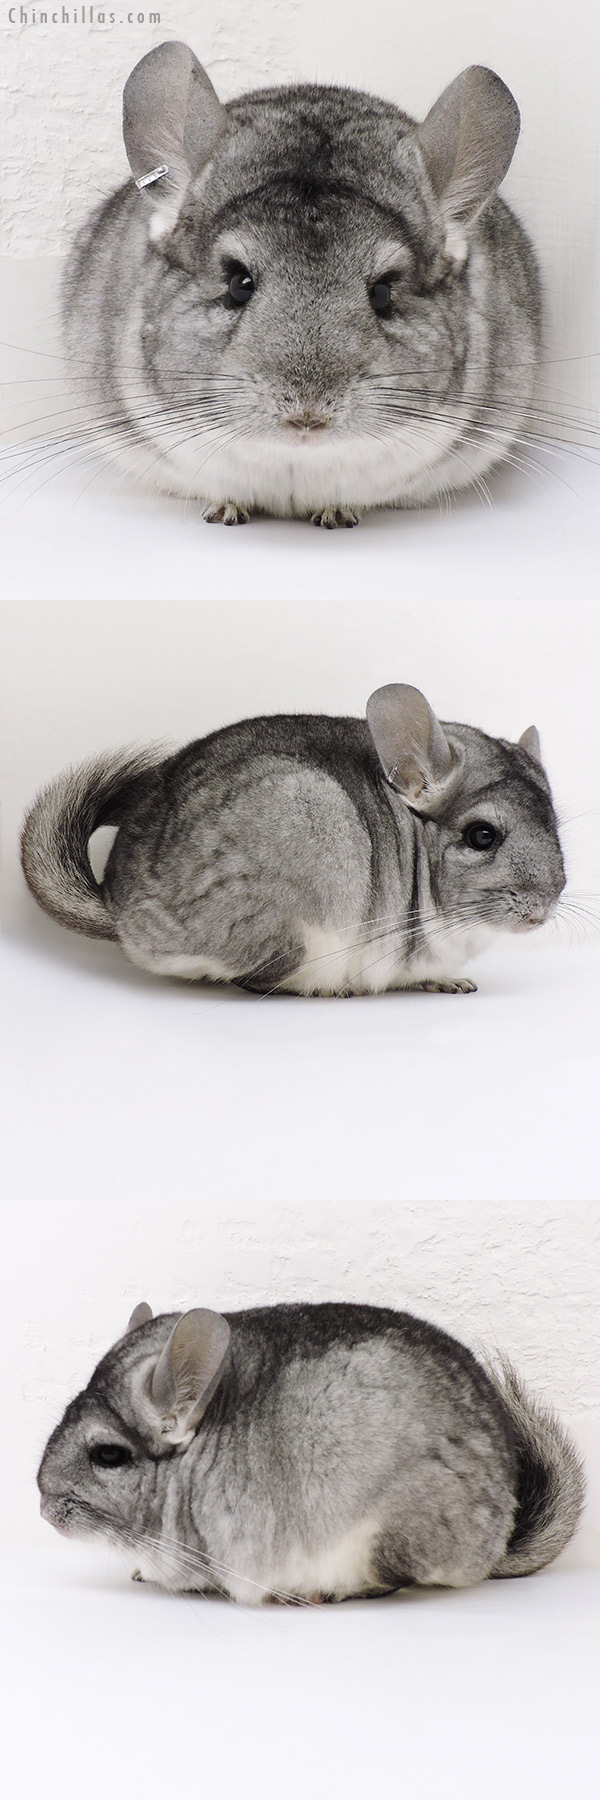 17013 Blocky Standard ( CCCU Royal Persian Angora & Violet Carrier ) Female Chinchilla